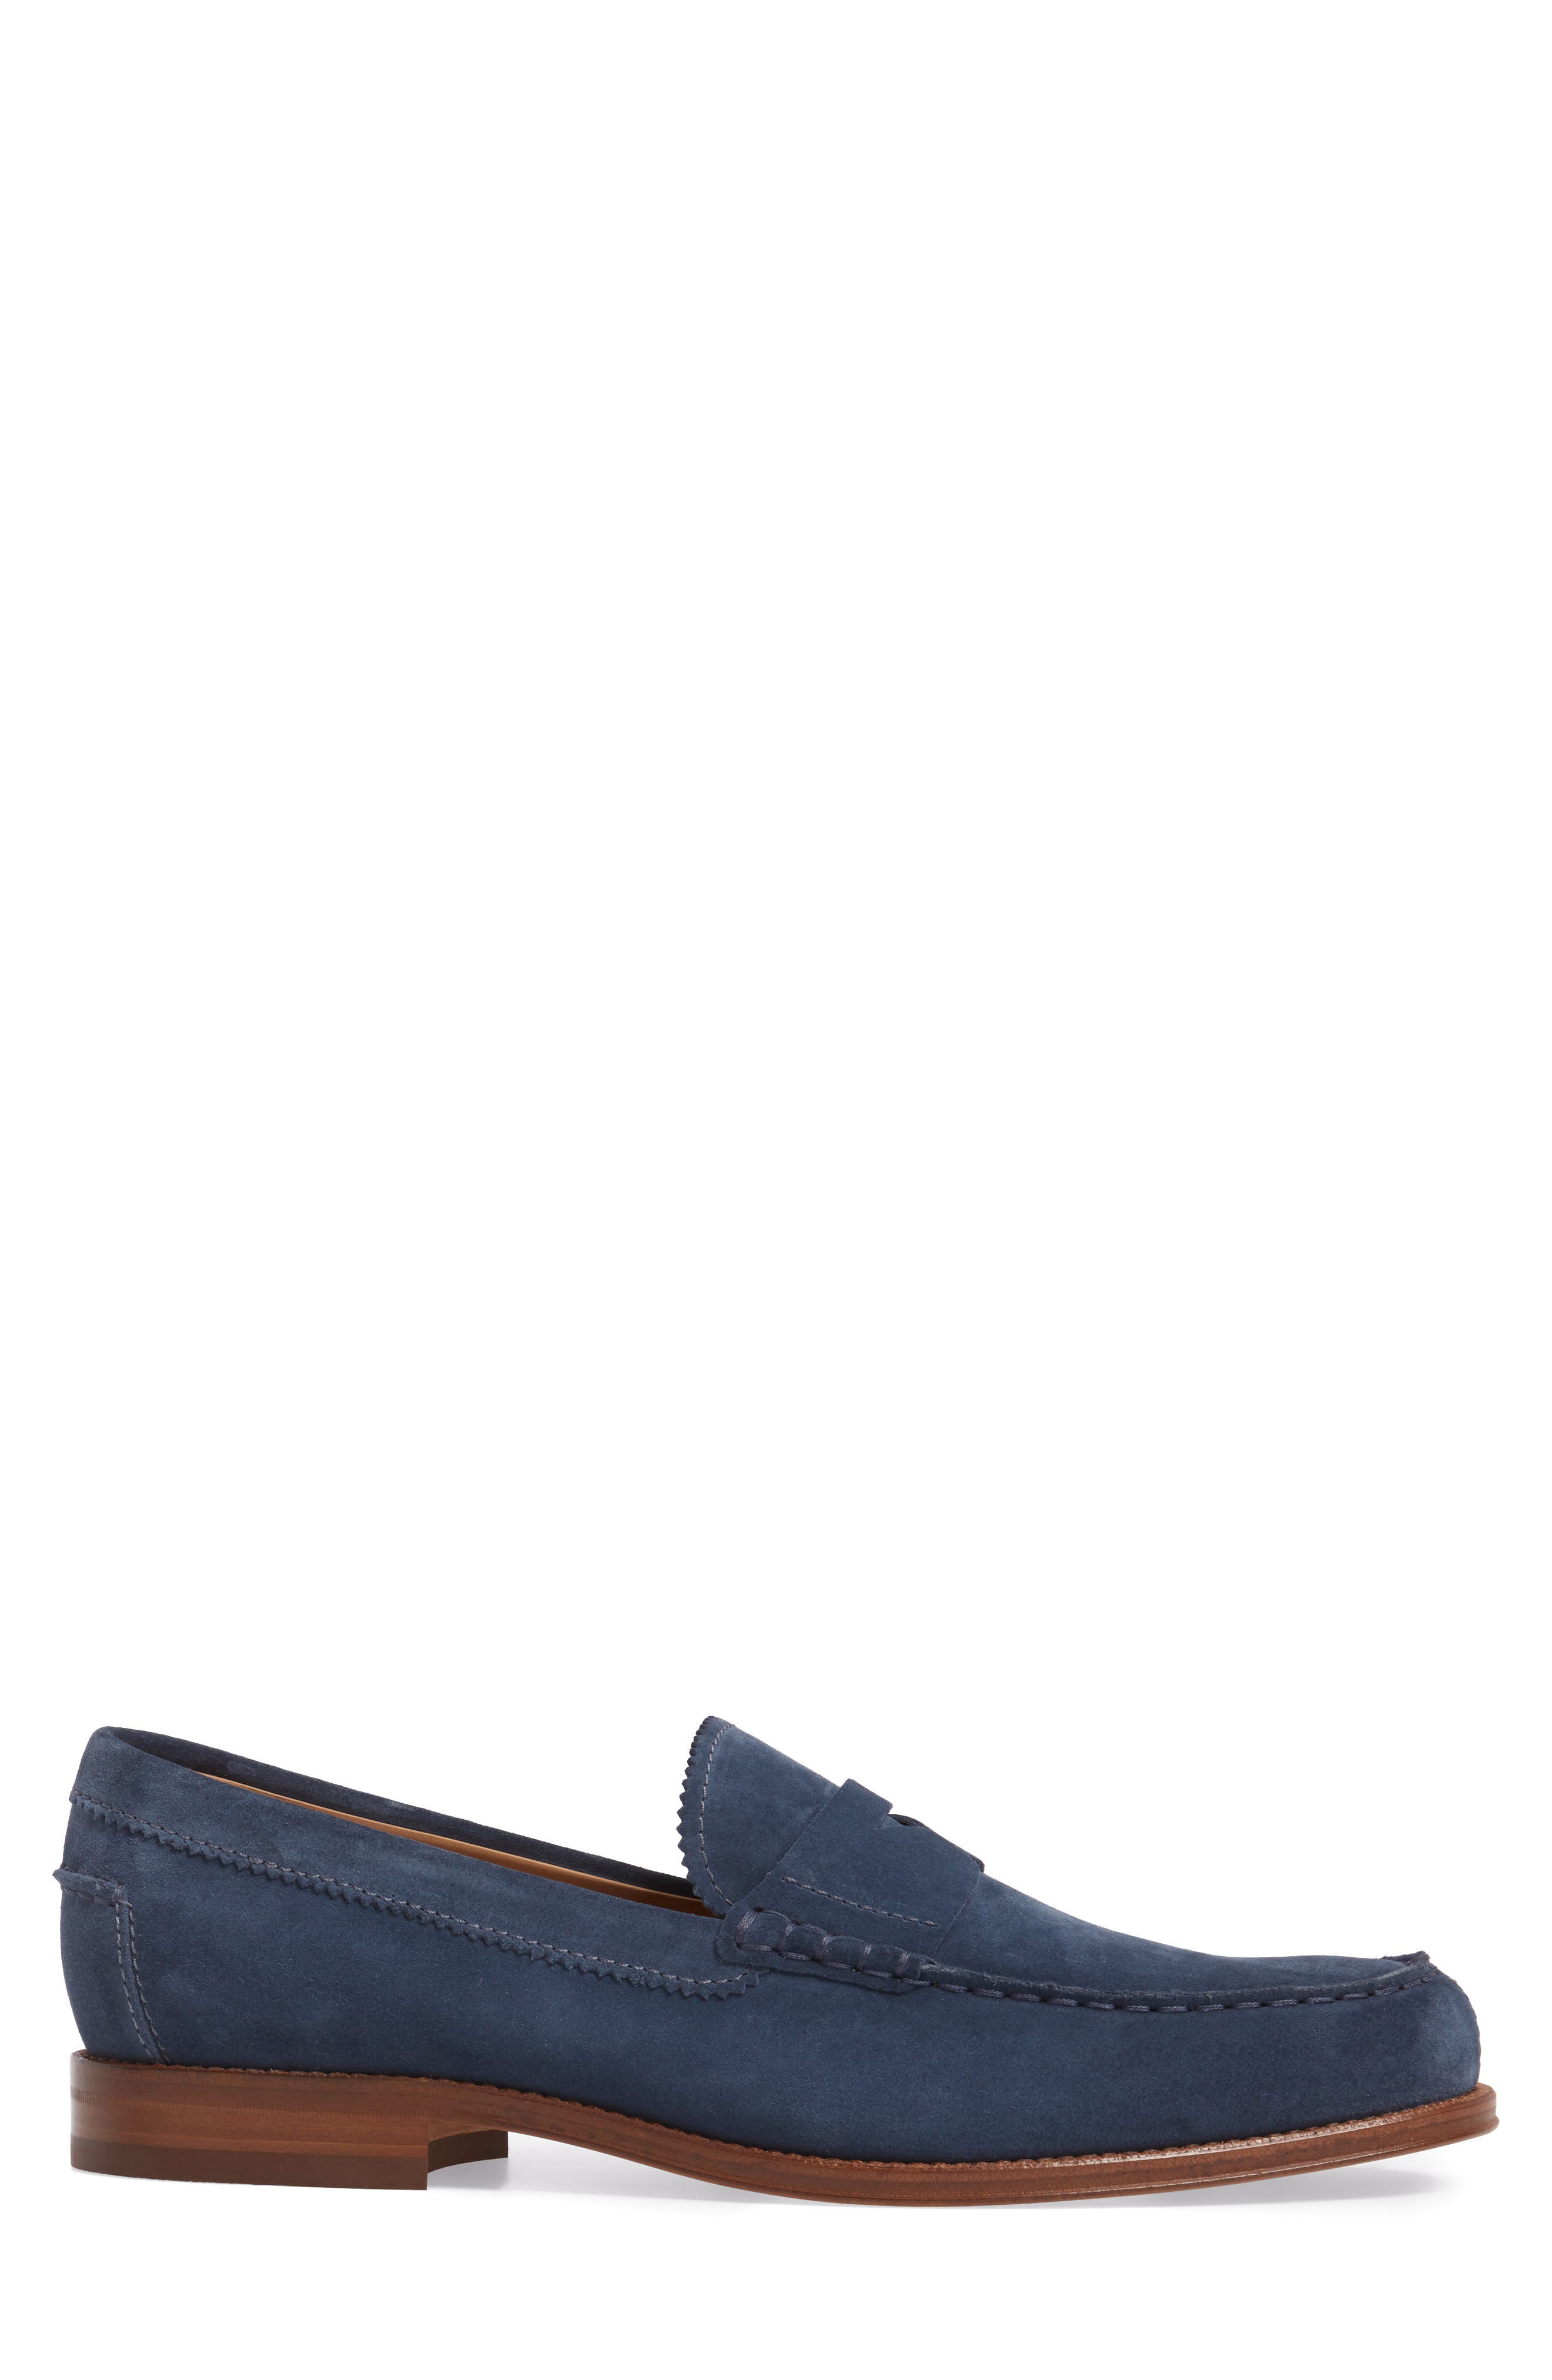 Suede Penny Loafer,                             Alternate thumbnail 6, color,